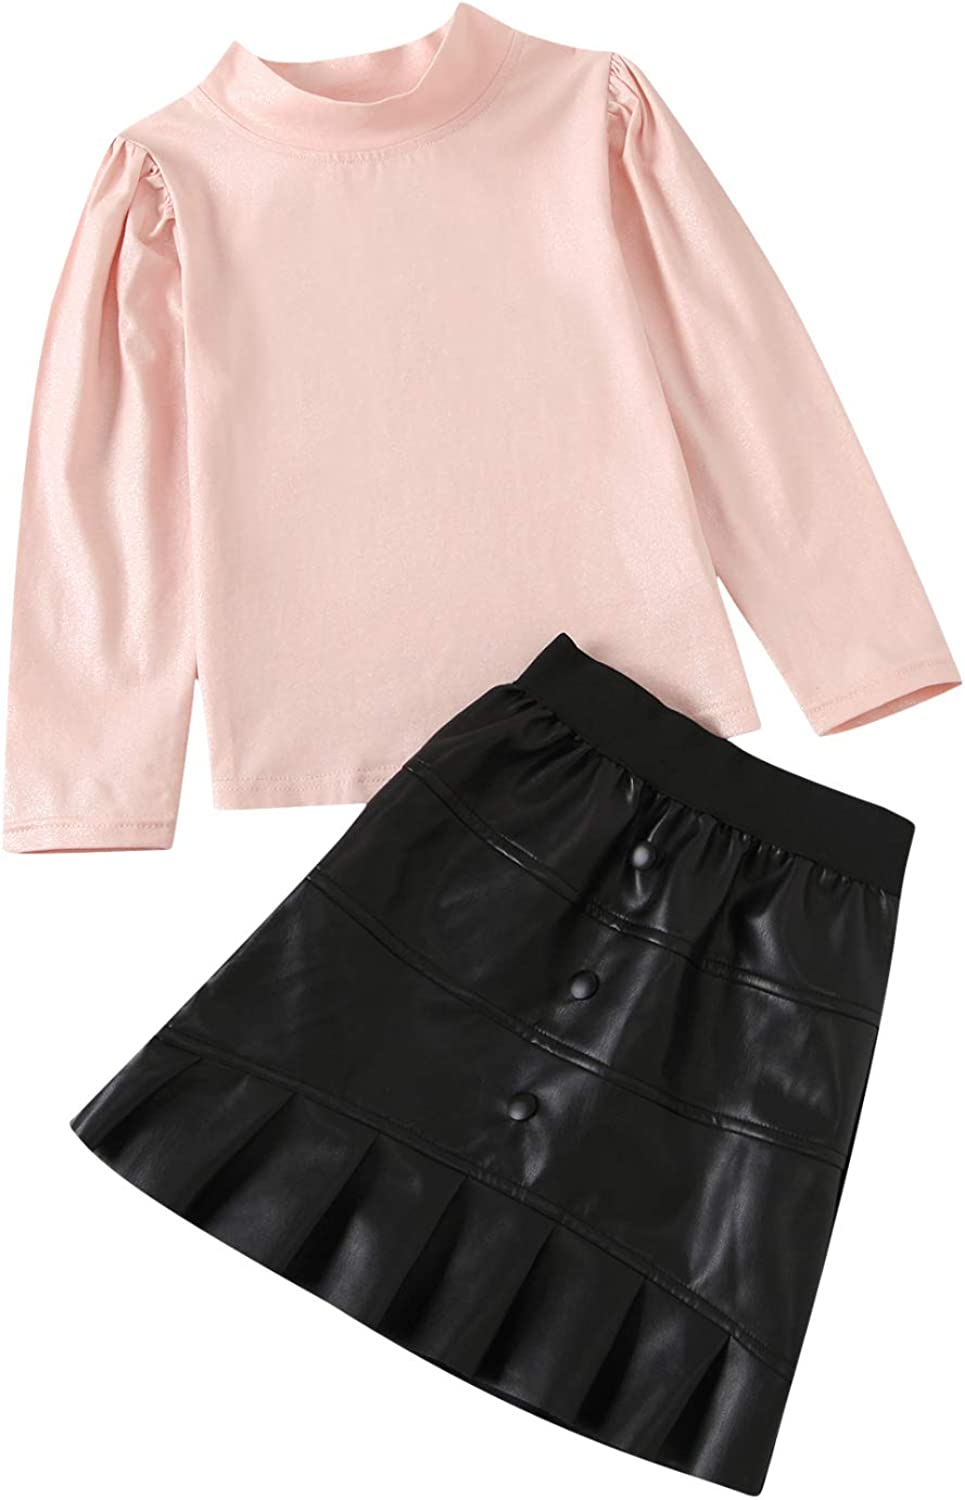 Kids Toddler Baby Girl Fall Winter Outfit Long Puff Sleeve Turtleneck Shirt Top PU Leather A-Line Skirt 2PCS Clothes Set